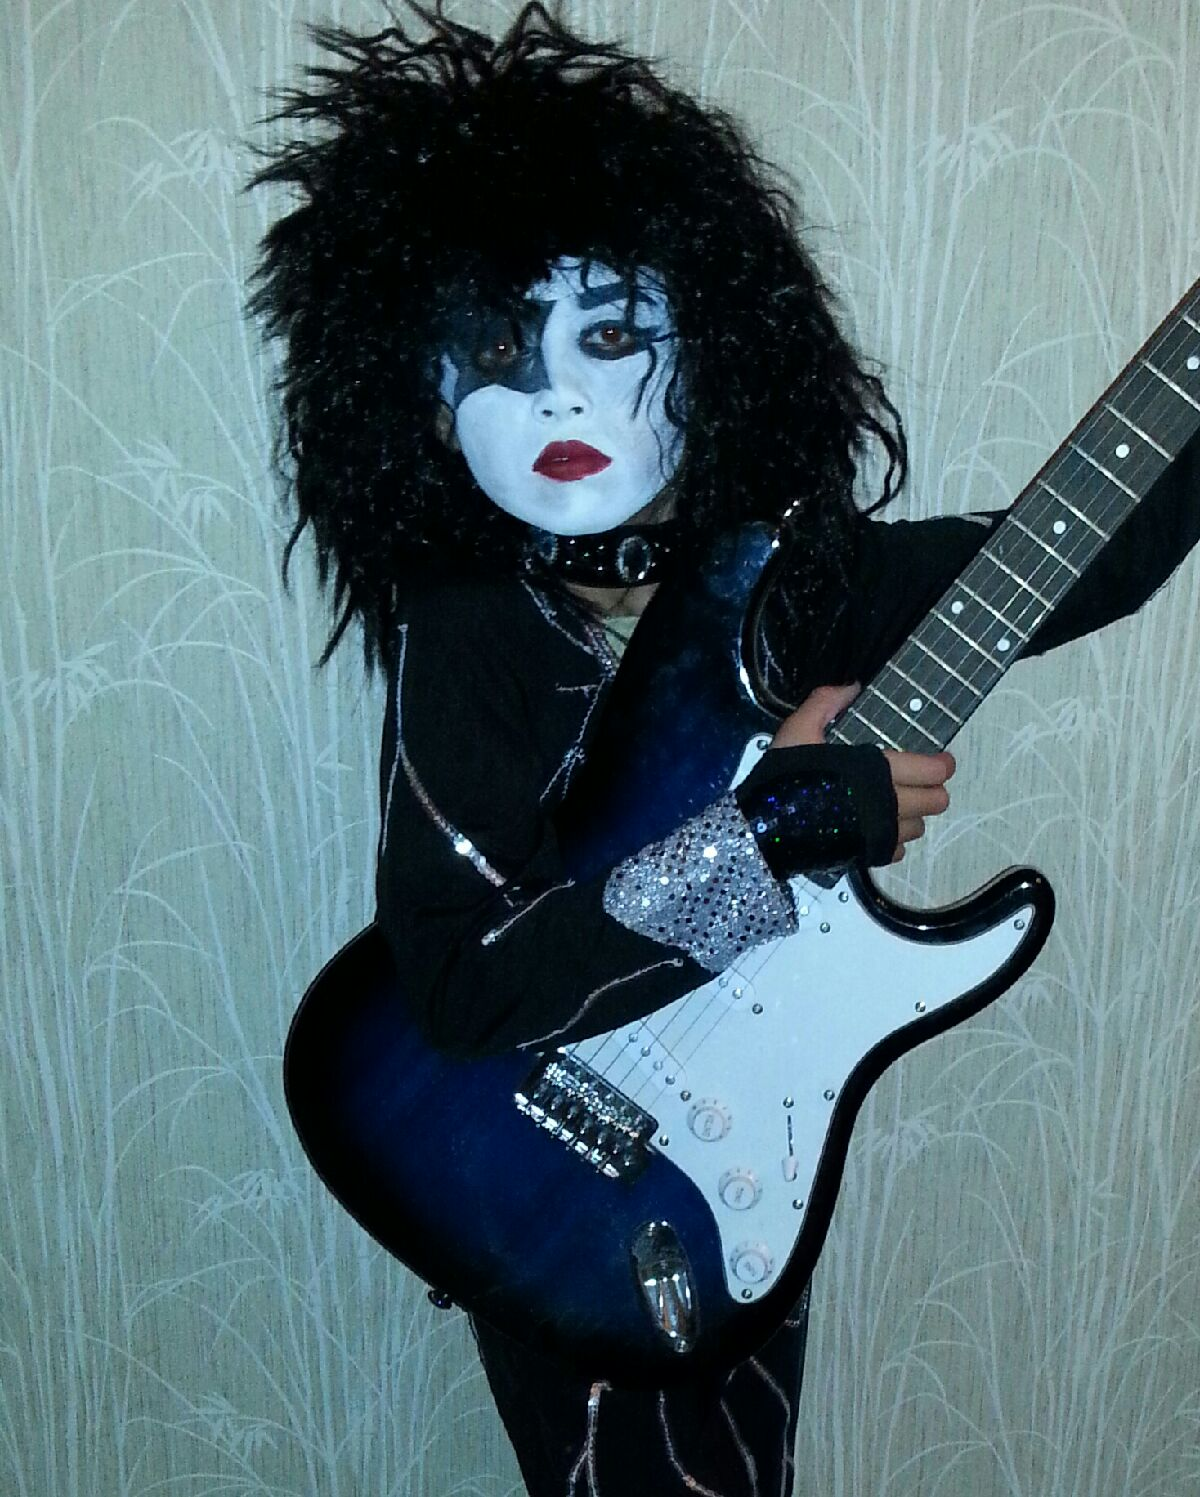 KISS Online :: KISS Army | Welcome To The KISSOnline.com ...